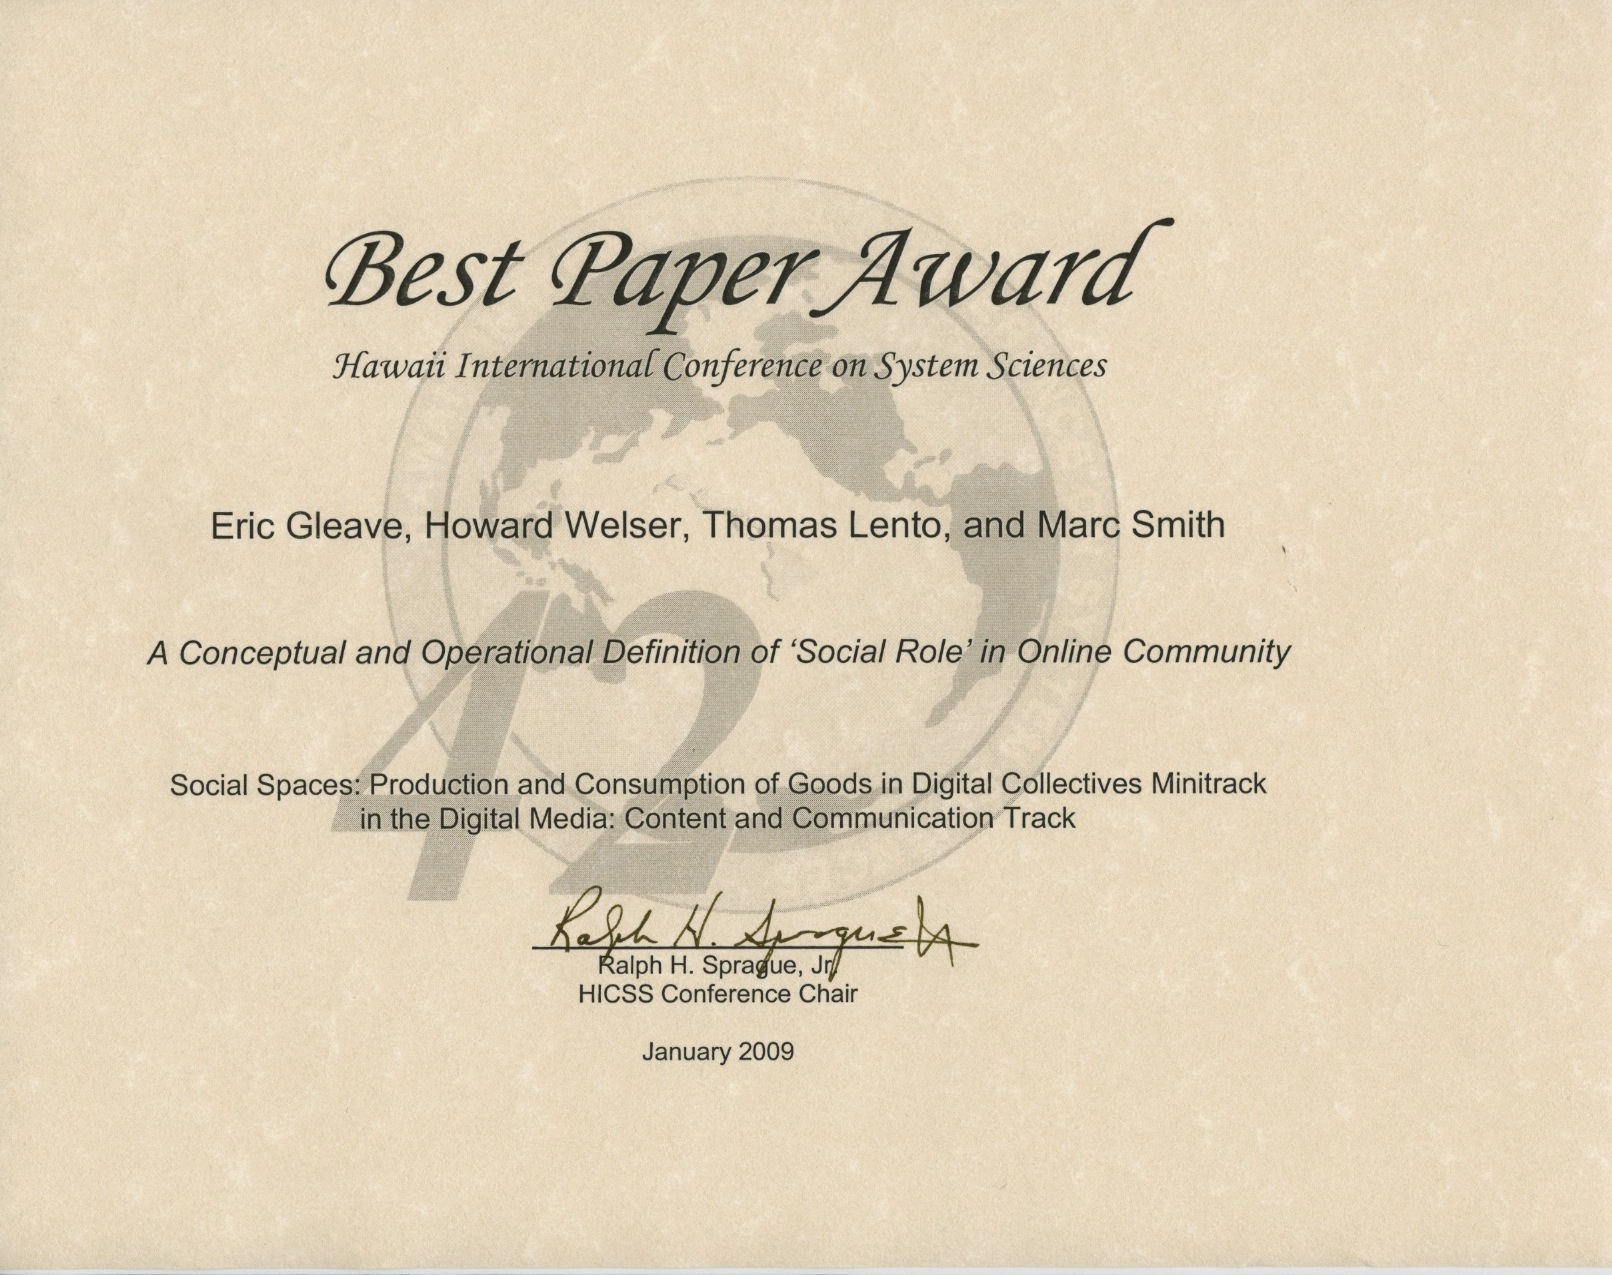 award letter definition best paper at hicss 42 a conceptual and operational 20533 | 2009 january hicss best paper award social roles1